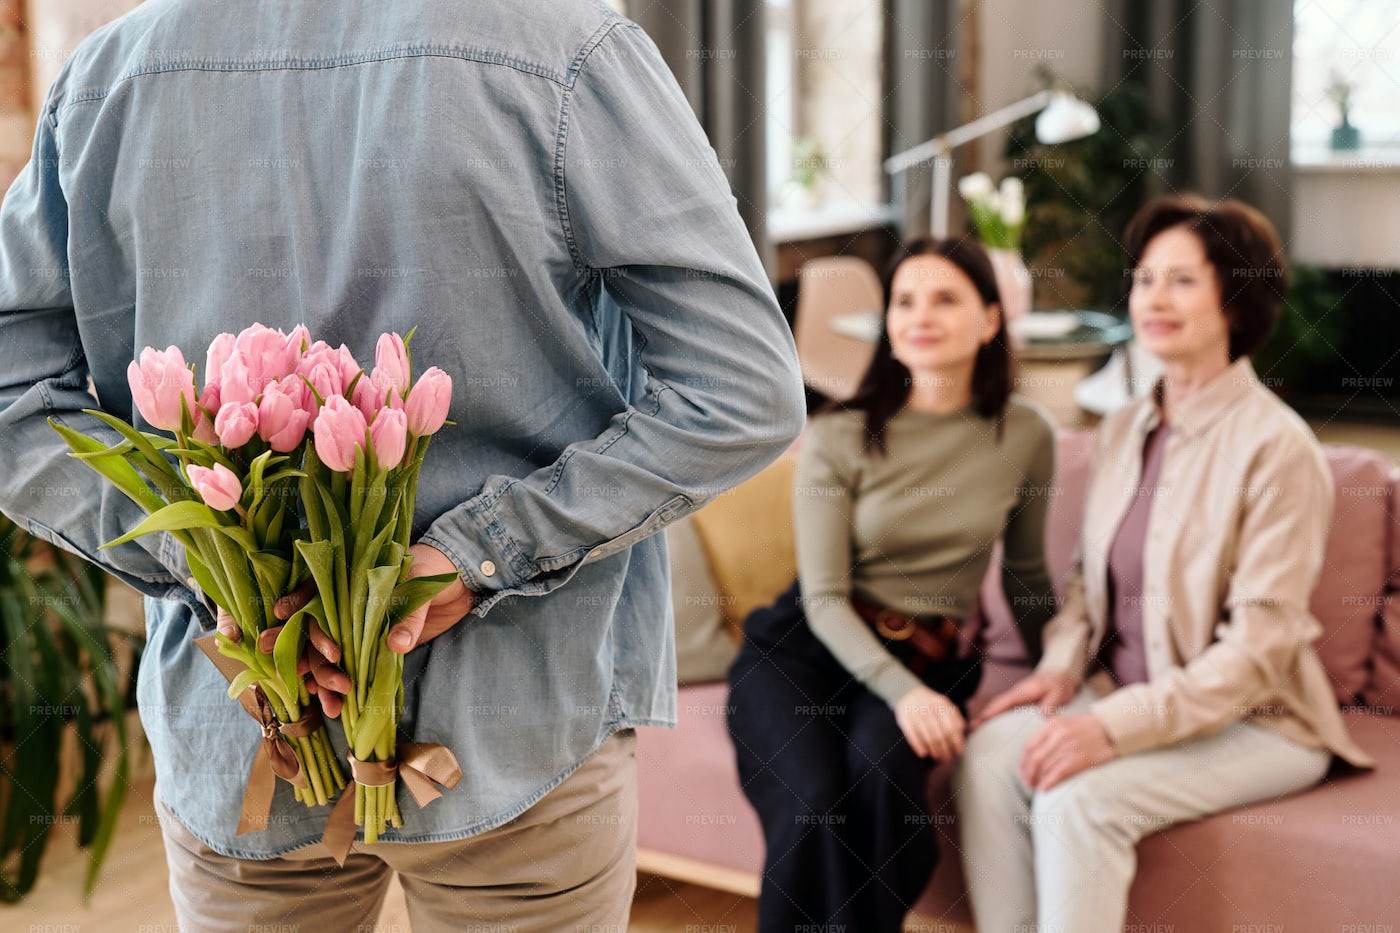 Man Giving Flowers To Females: Stock Photos